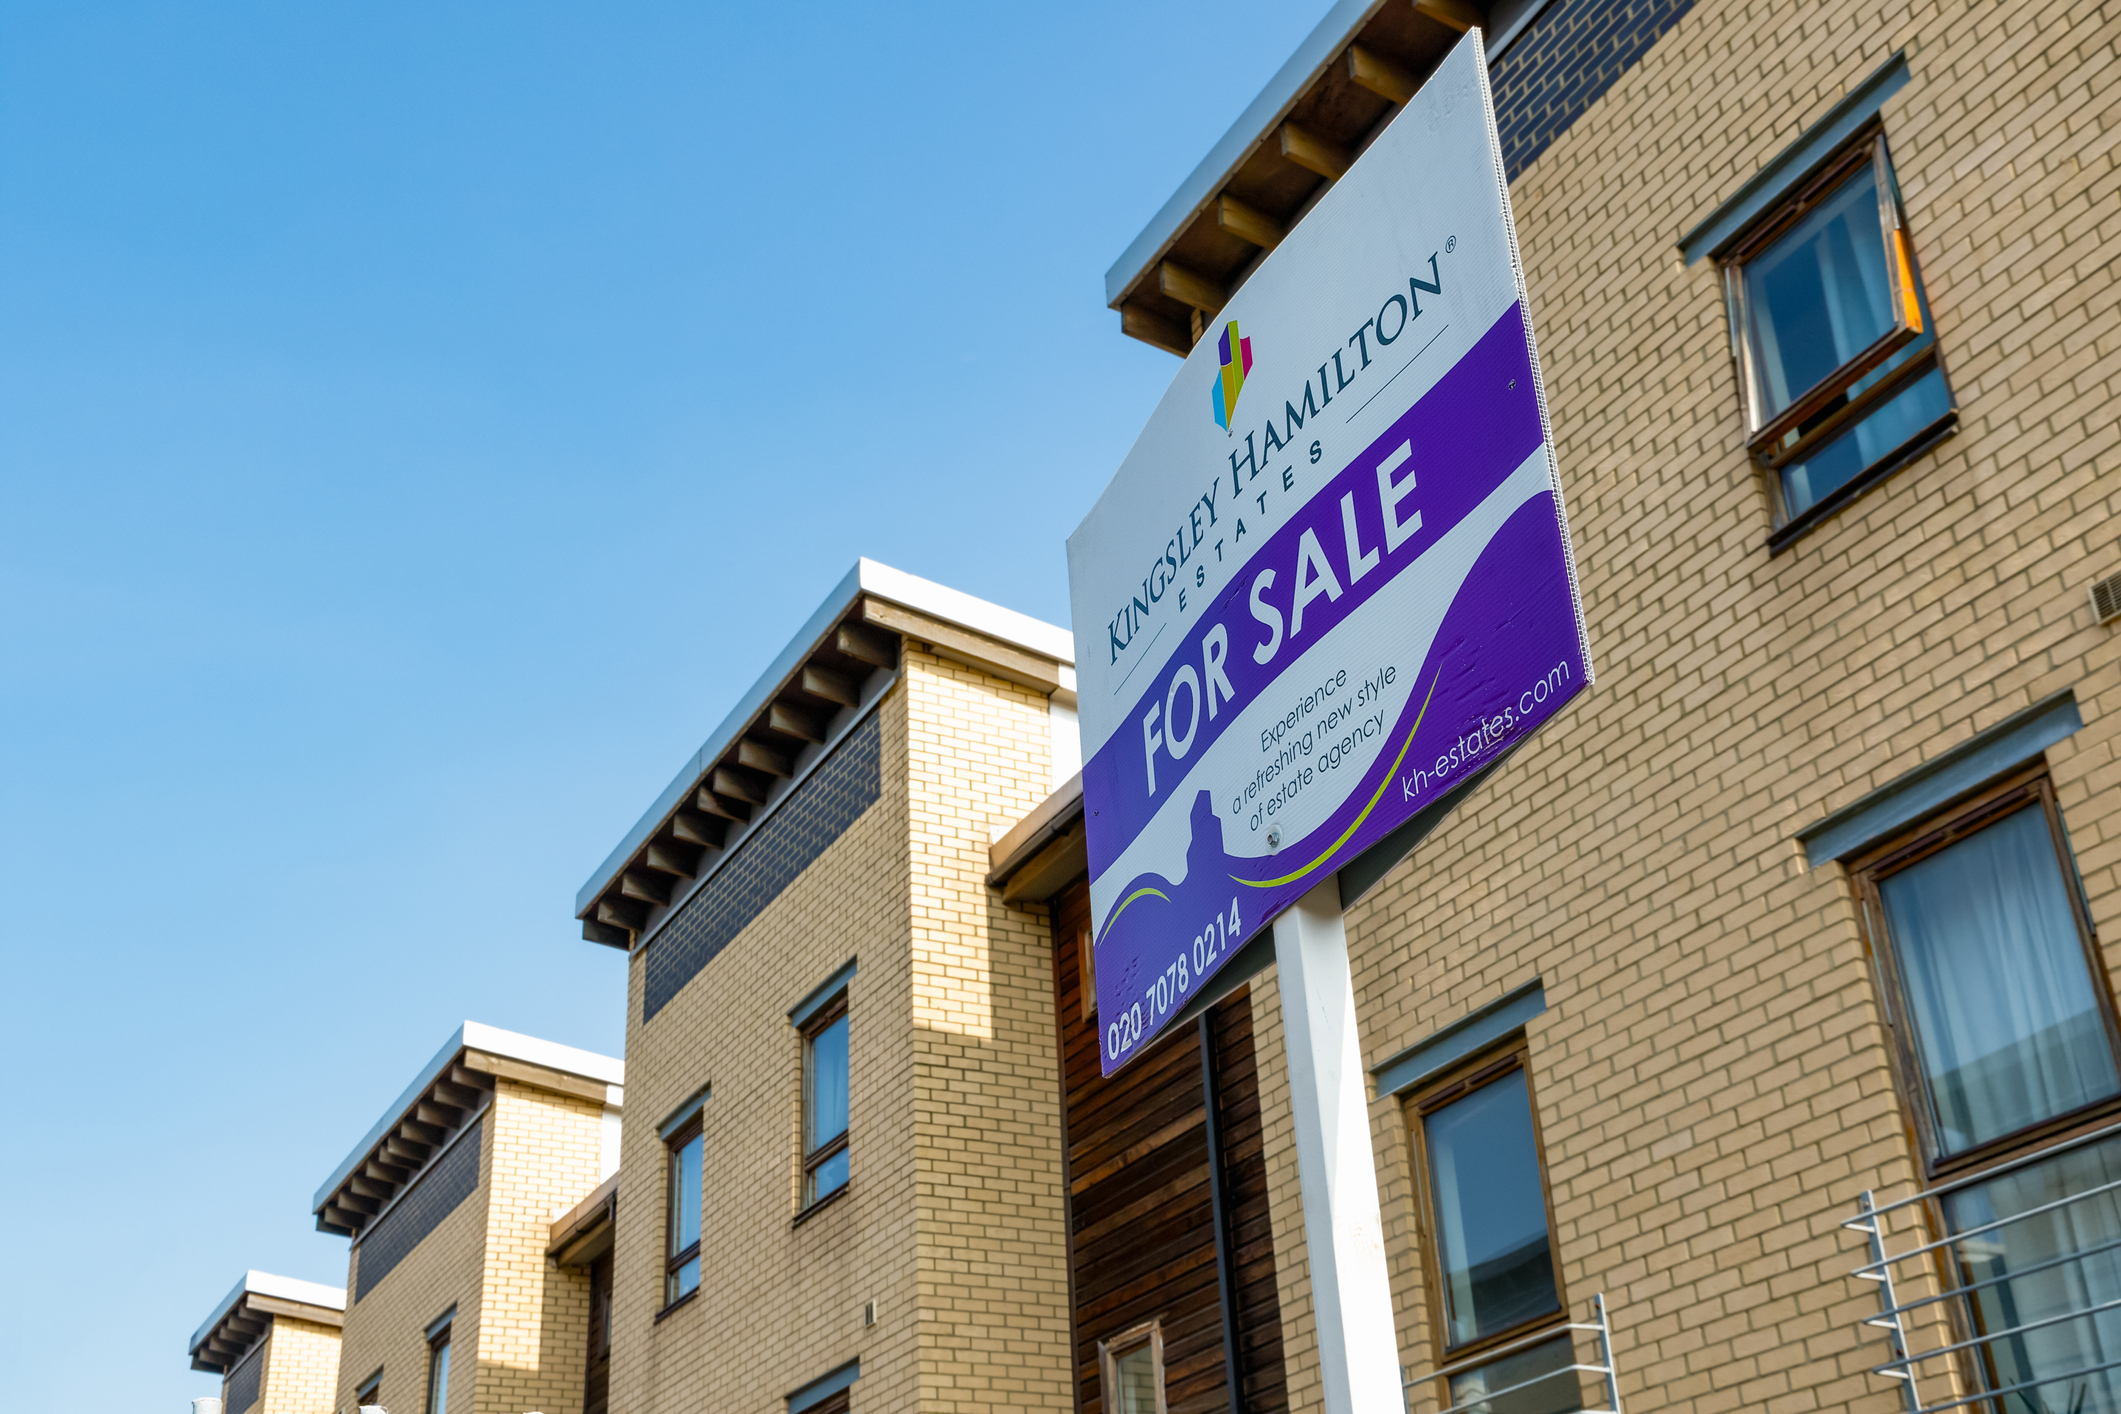 selling shared ownership